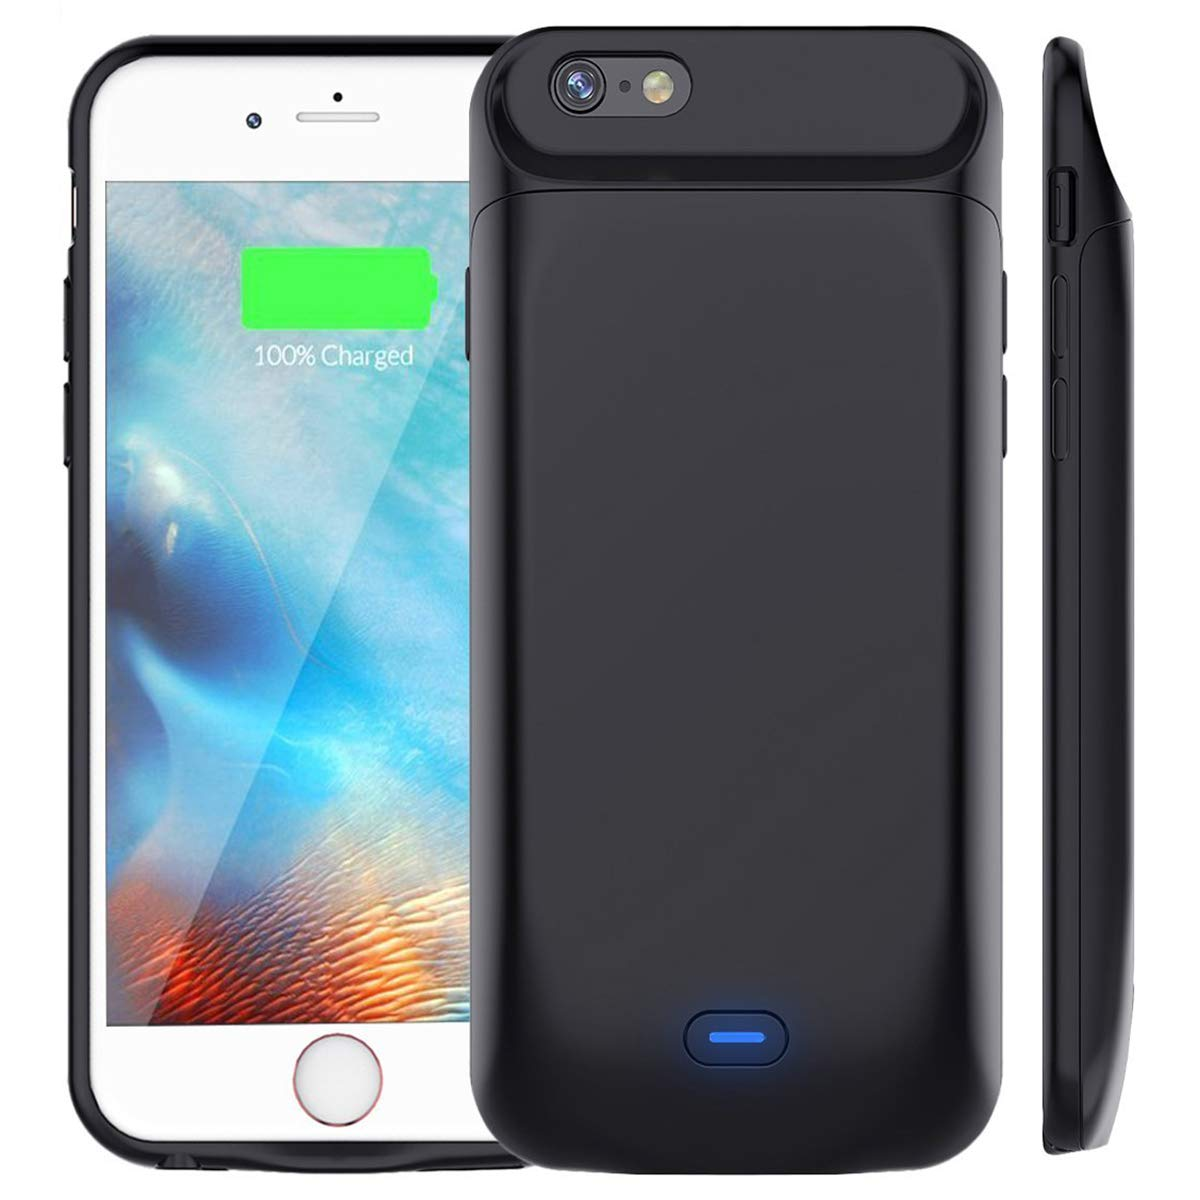 5000mAh Battery Case for iPhone 6S/6, Vproof Rechargeable External Battery Portable Power Charger Protective Charging Case for Apple iPhone 6,6S (4.7 Inch) (Black) iPhone 6 battery case-FBA